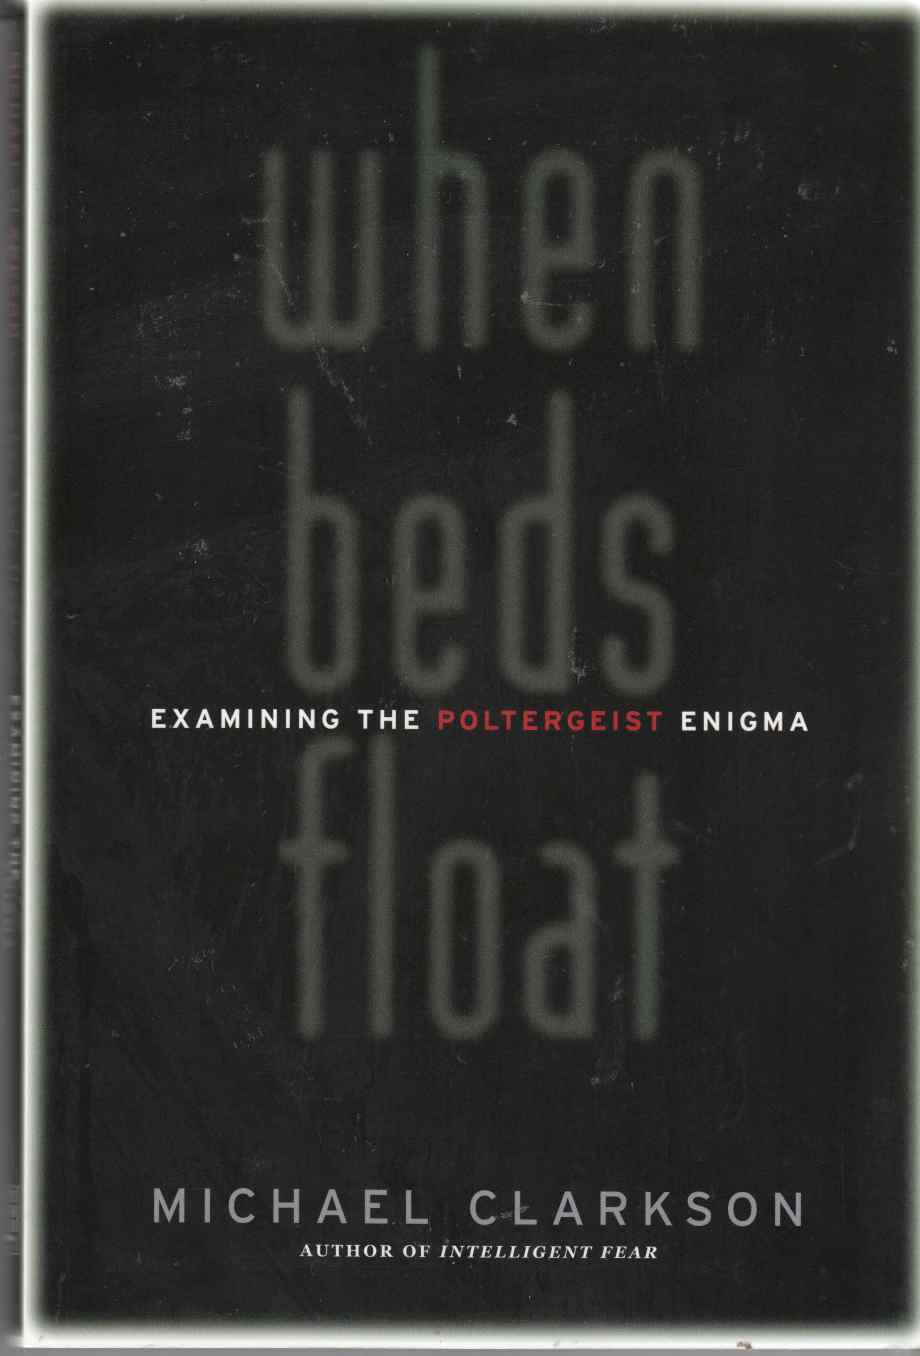 Image for When Beds Float Examining the Poltergeist Enigma